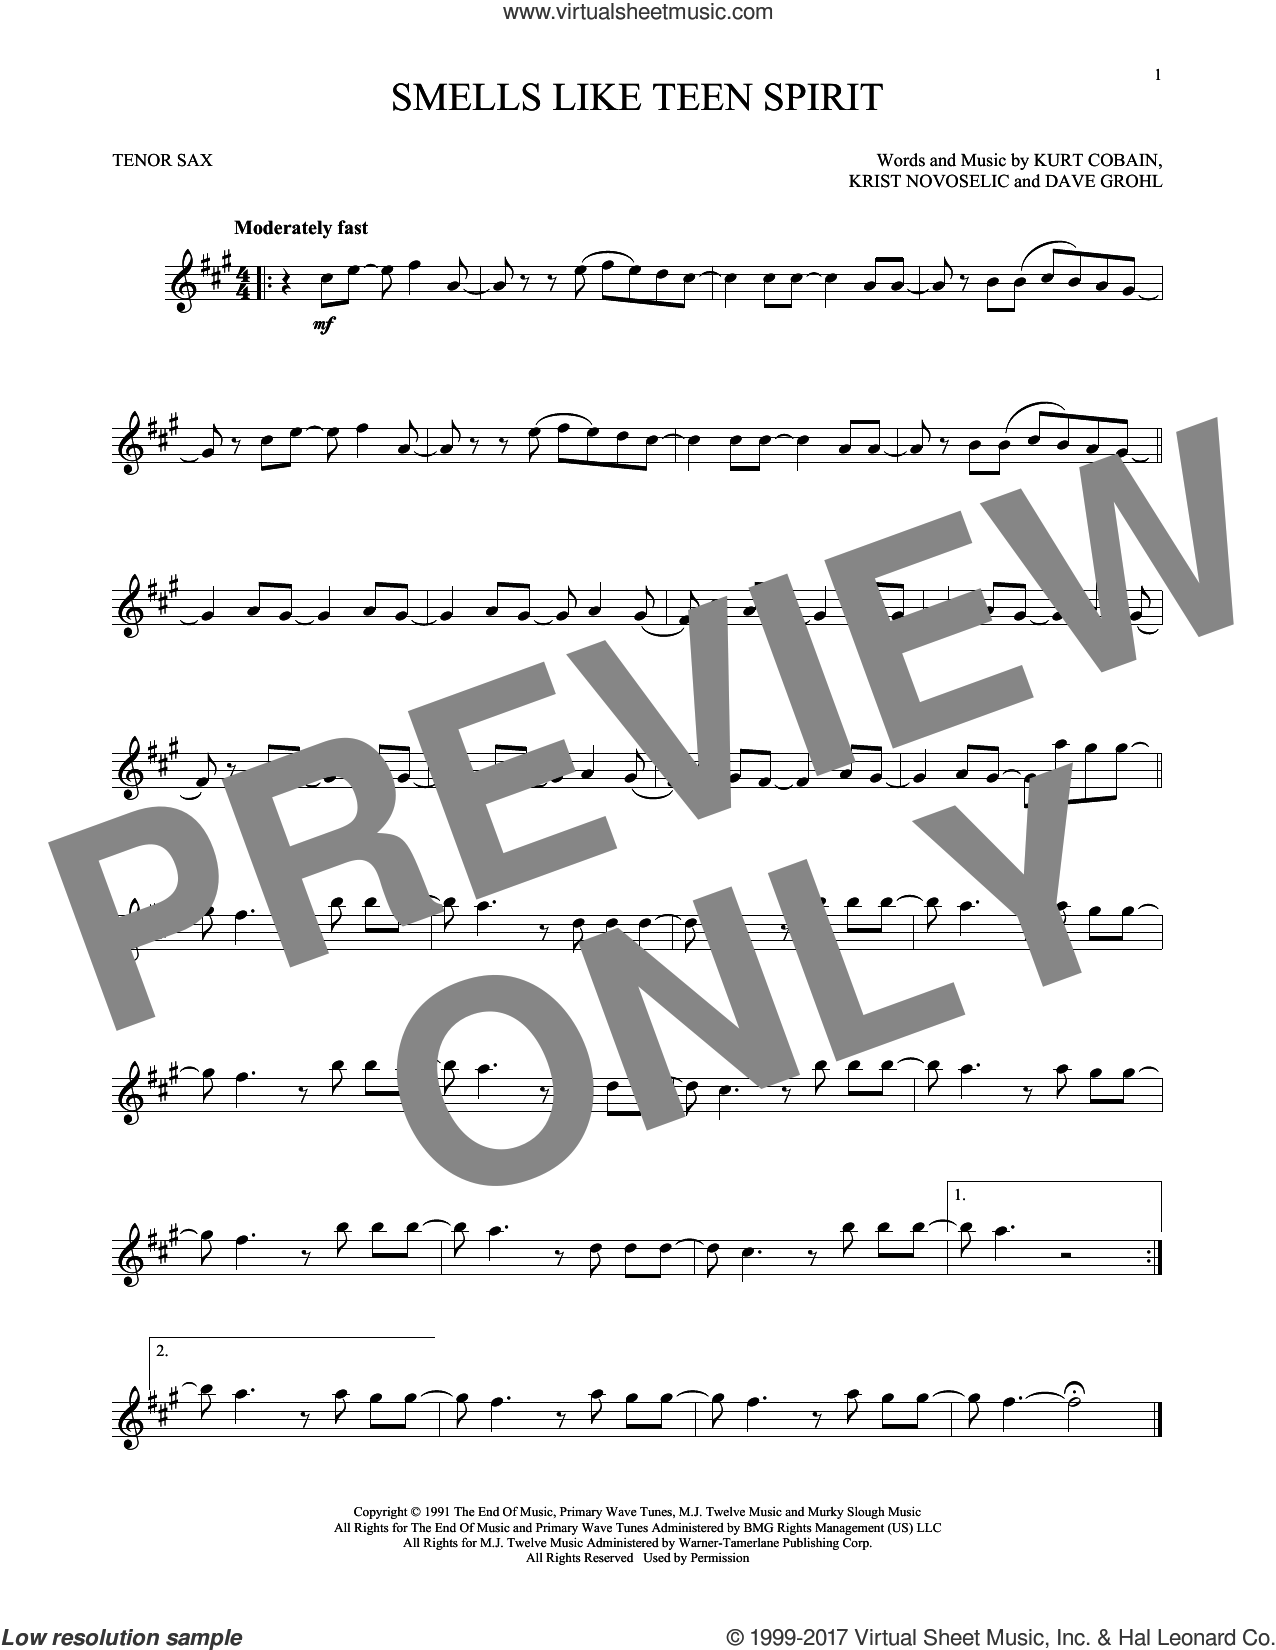 Smells Like Teen Spirit sheet music for tenor saxophone solo by Nirvana, Dave Grohl, Krist Novoselic and Kurt Cobain, intermediate